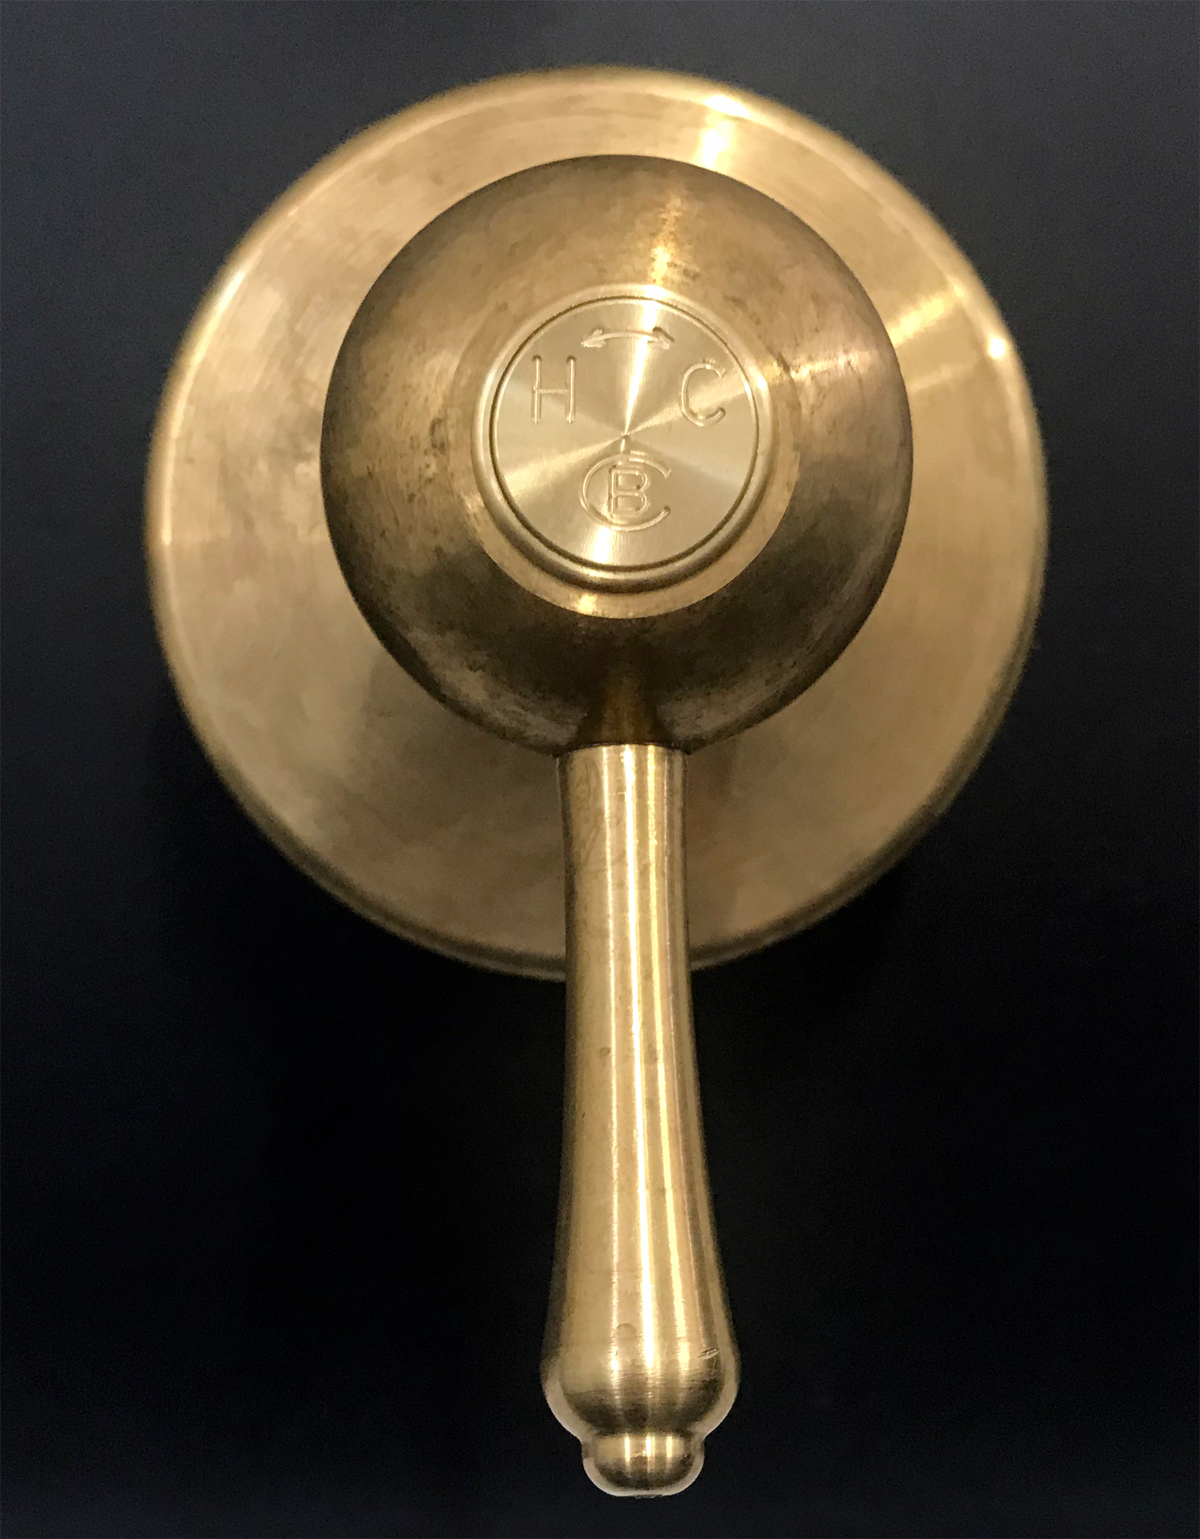 Roulette Lever Wall Mixer in Raw Brass finish with Engraved Button Upgrade